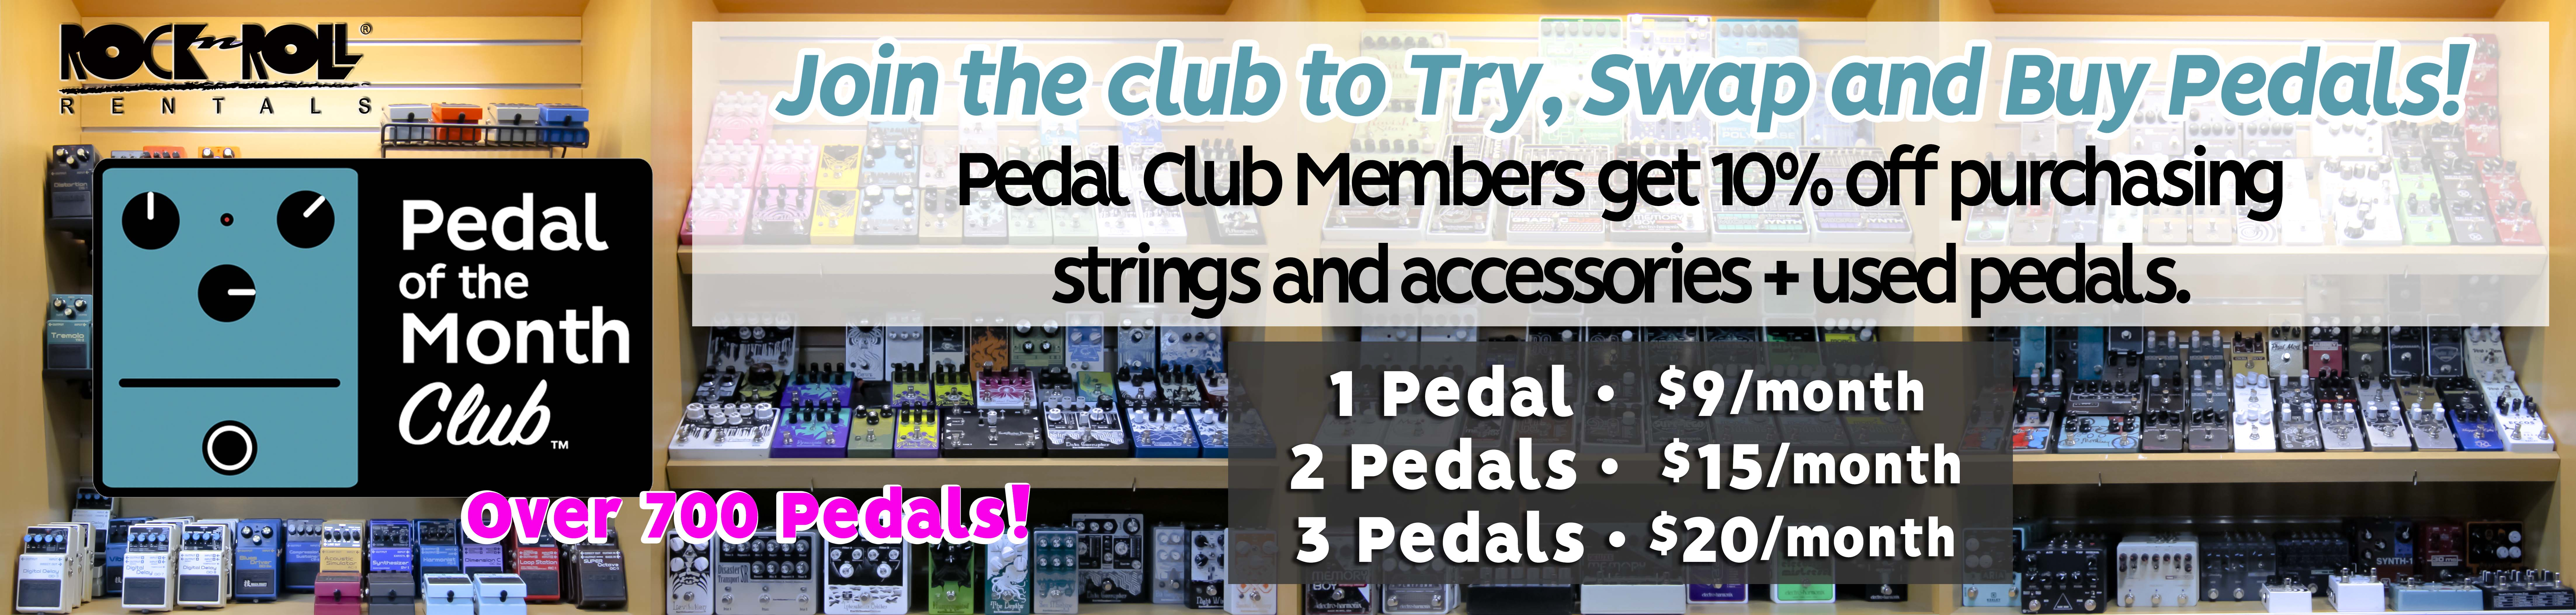 Pedal of the Month Club 2020